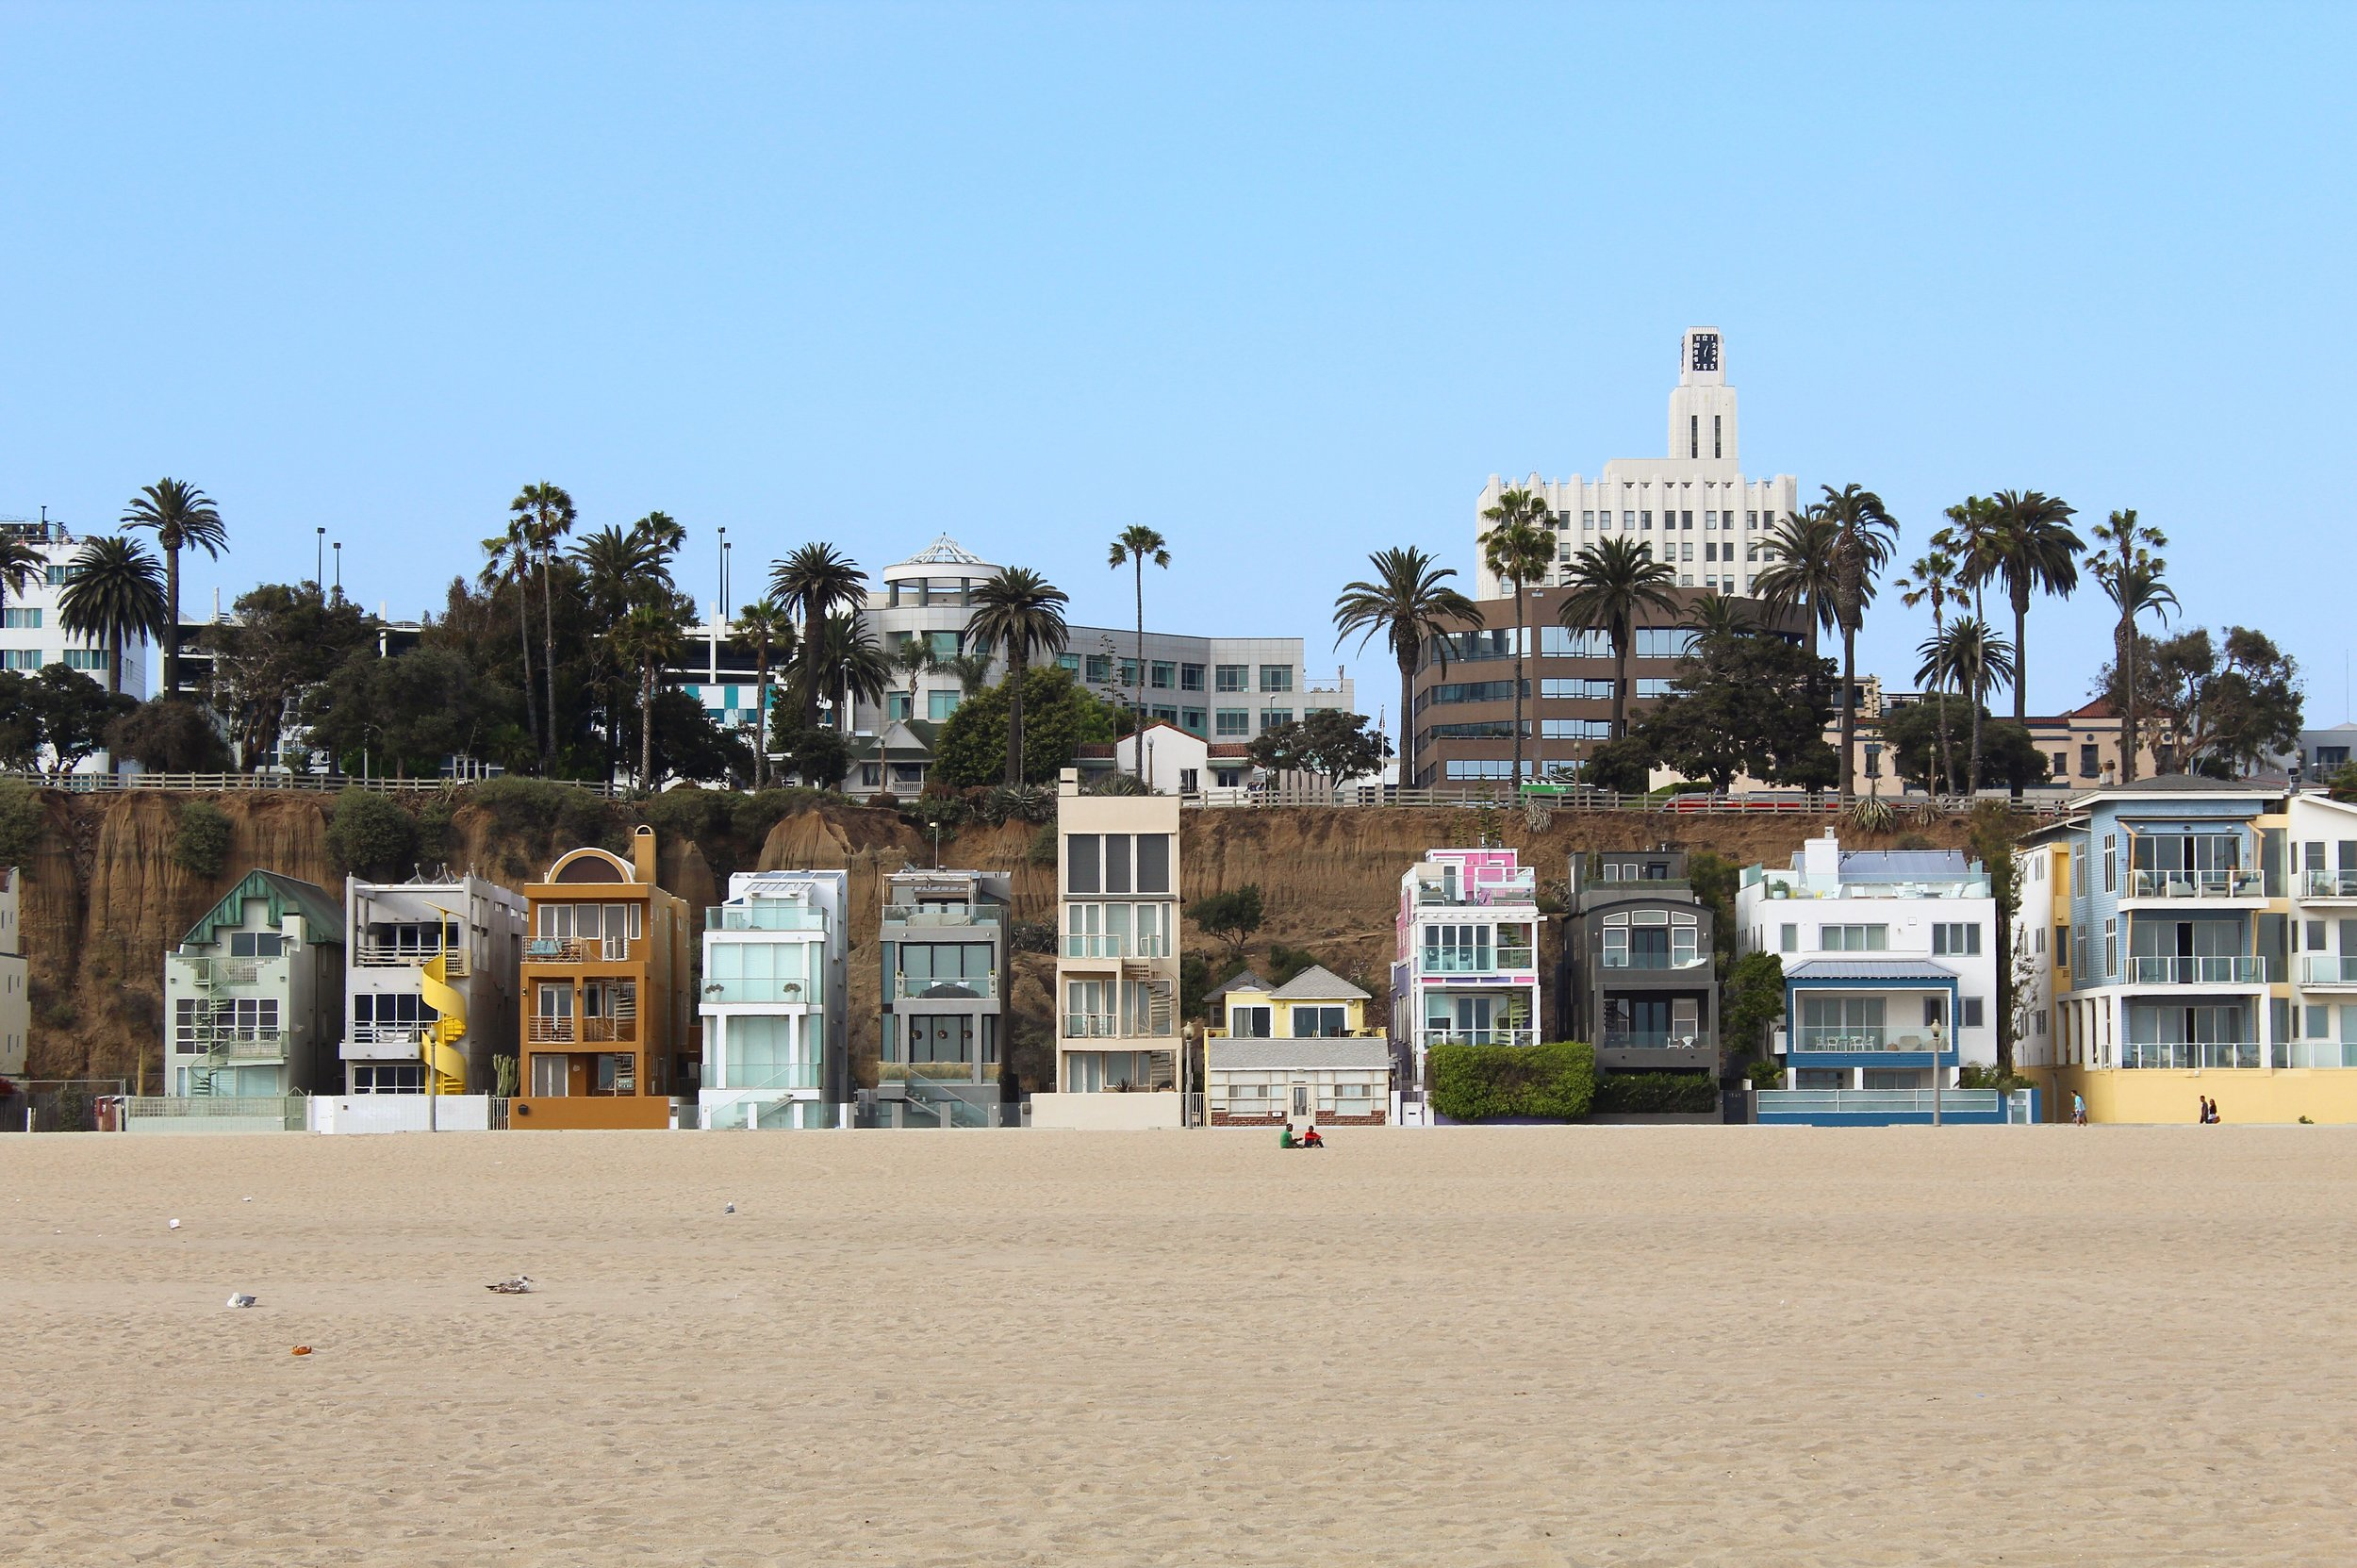 Adorable little row of houses in Santa Monica. Can I move here?